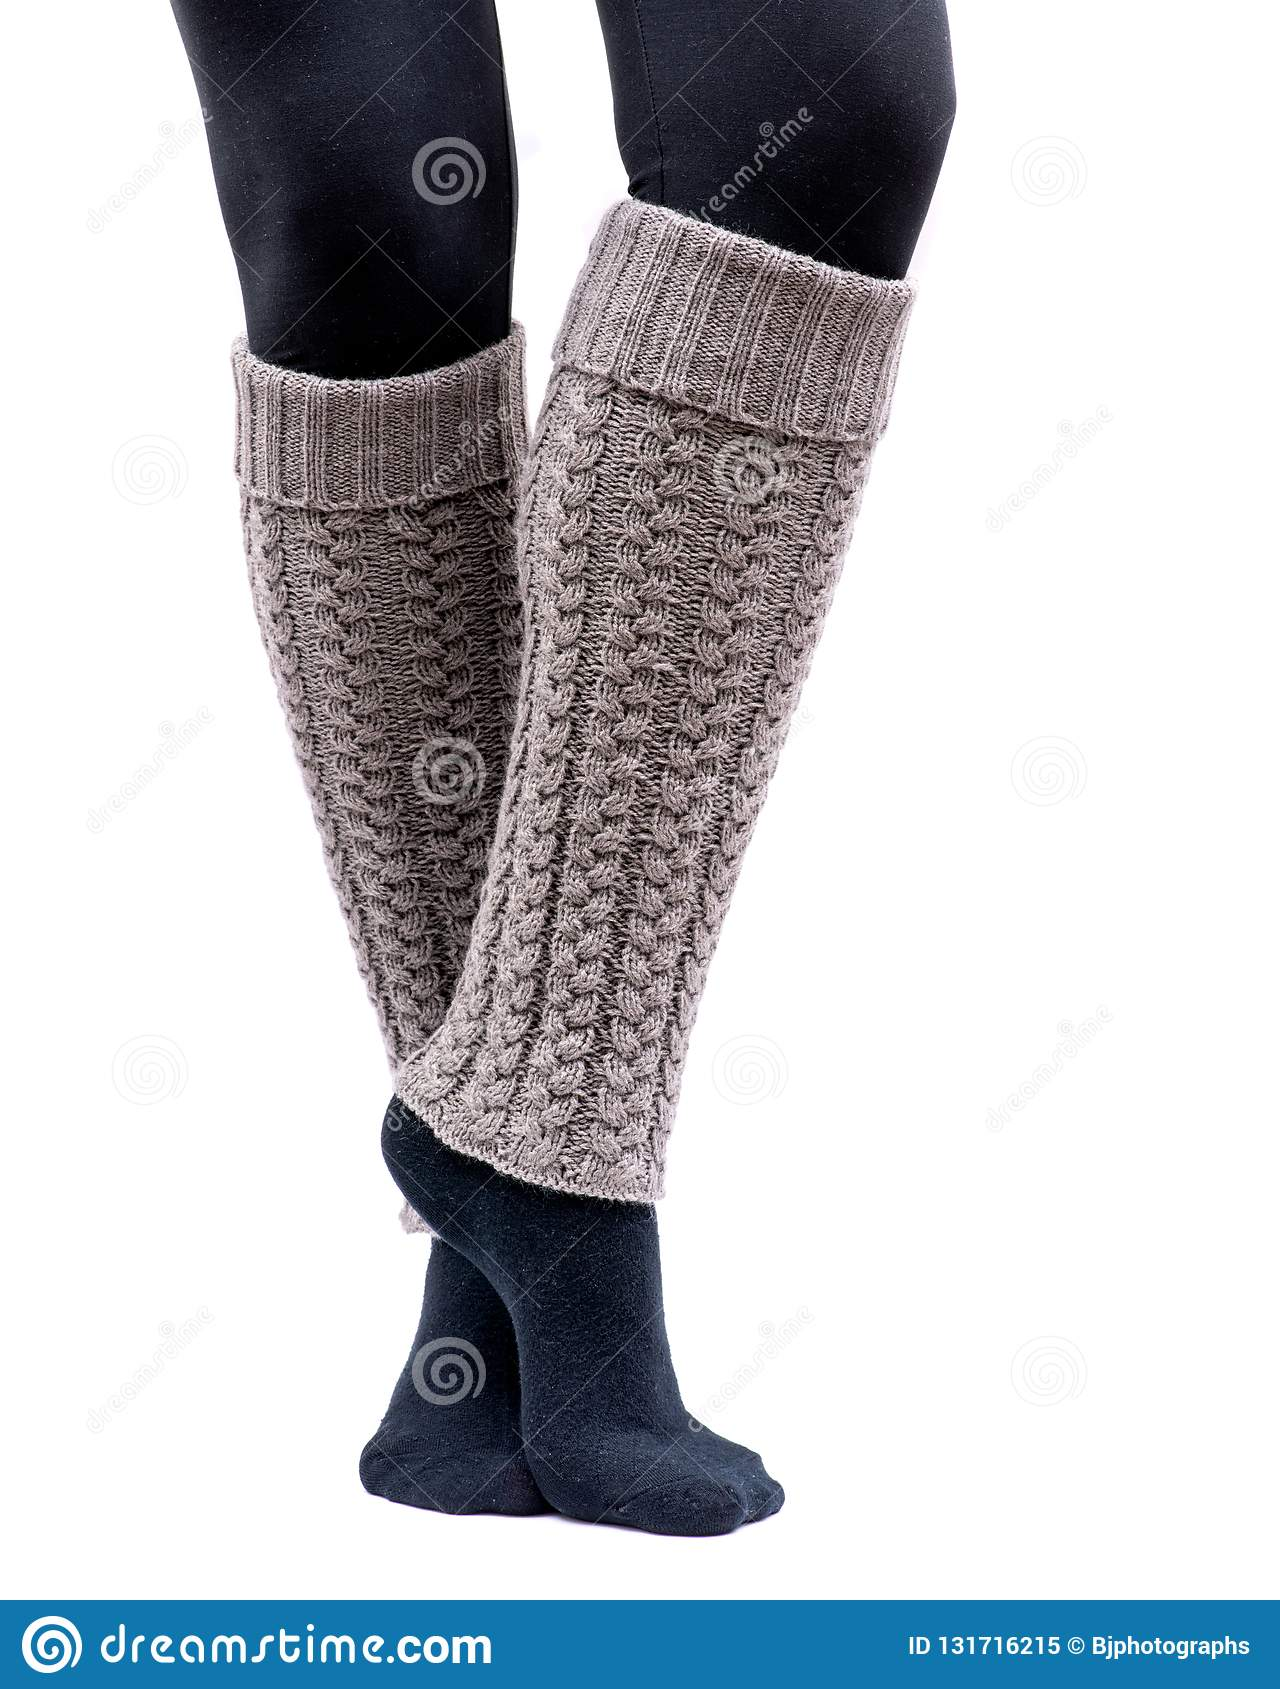 Fashion week Wear to what with white leg warmers for lady